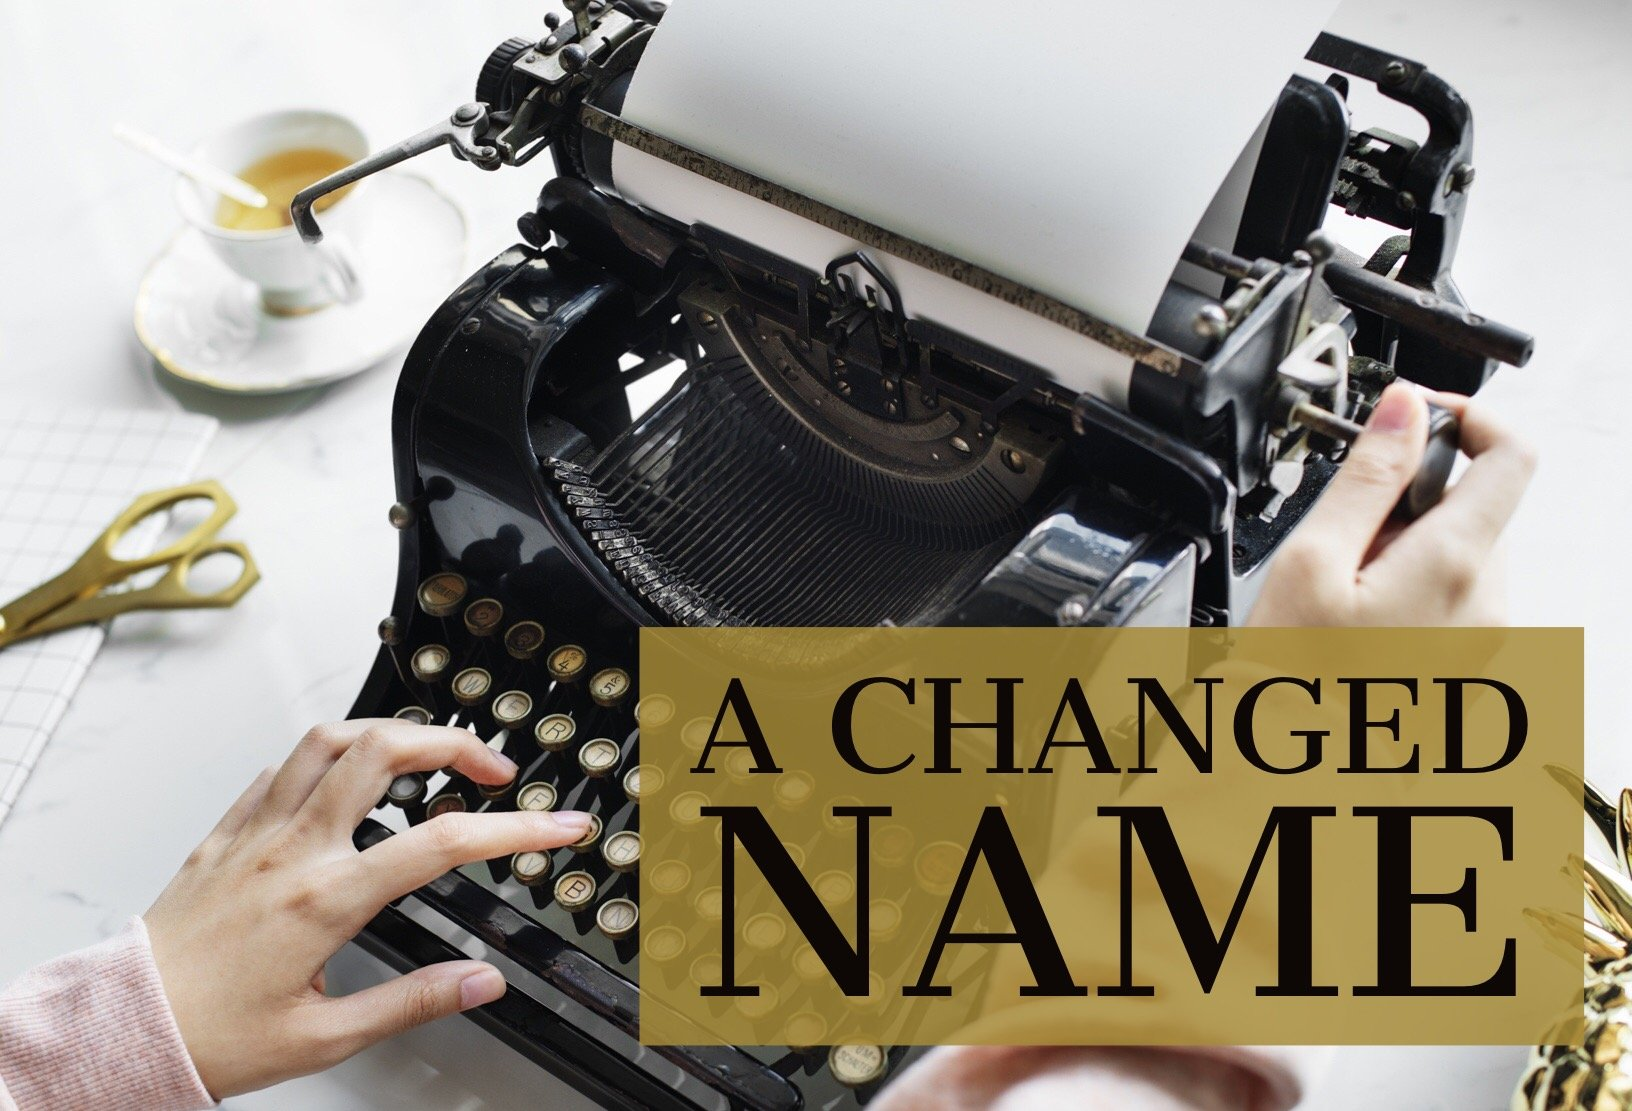 a-changed-name-image A Changed Name